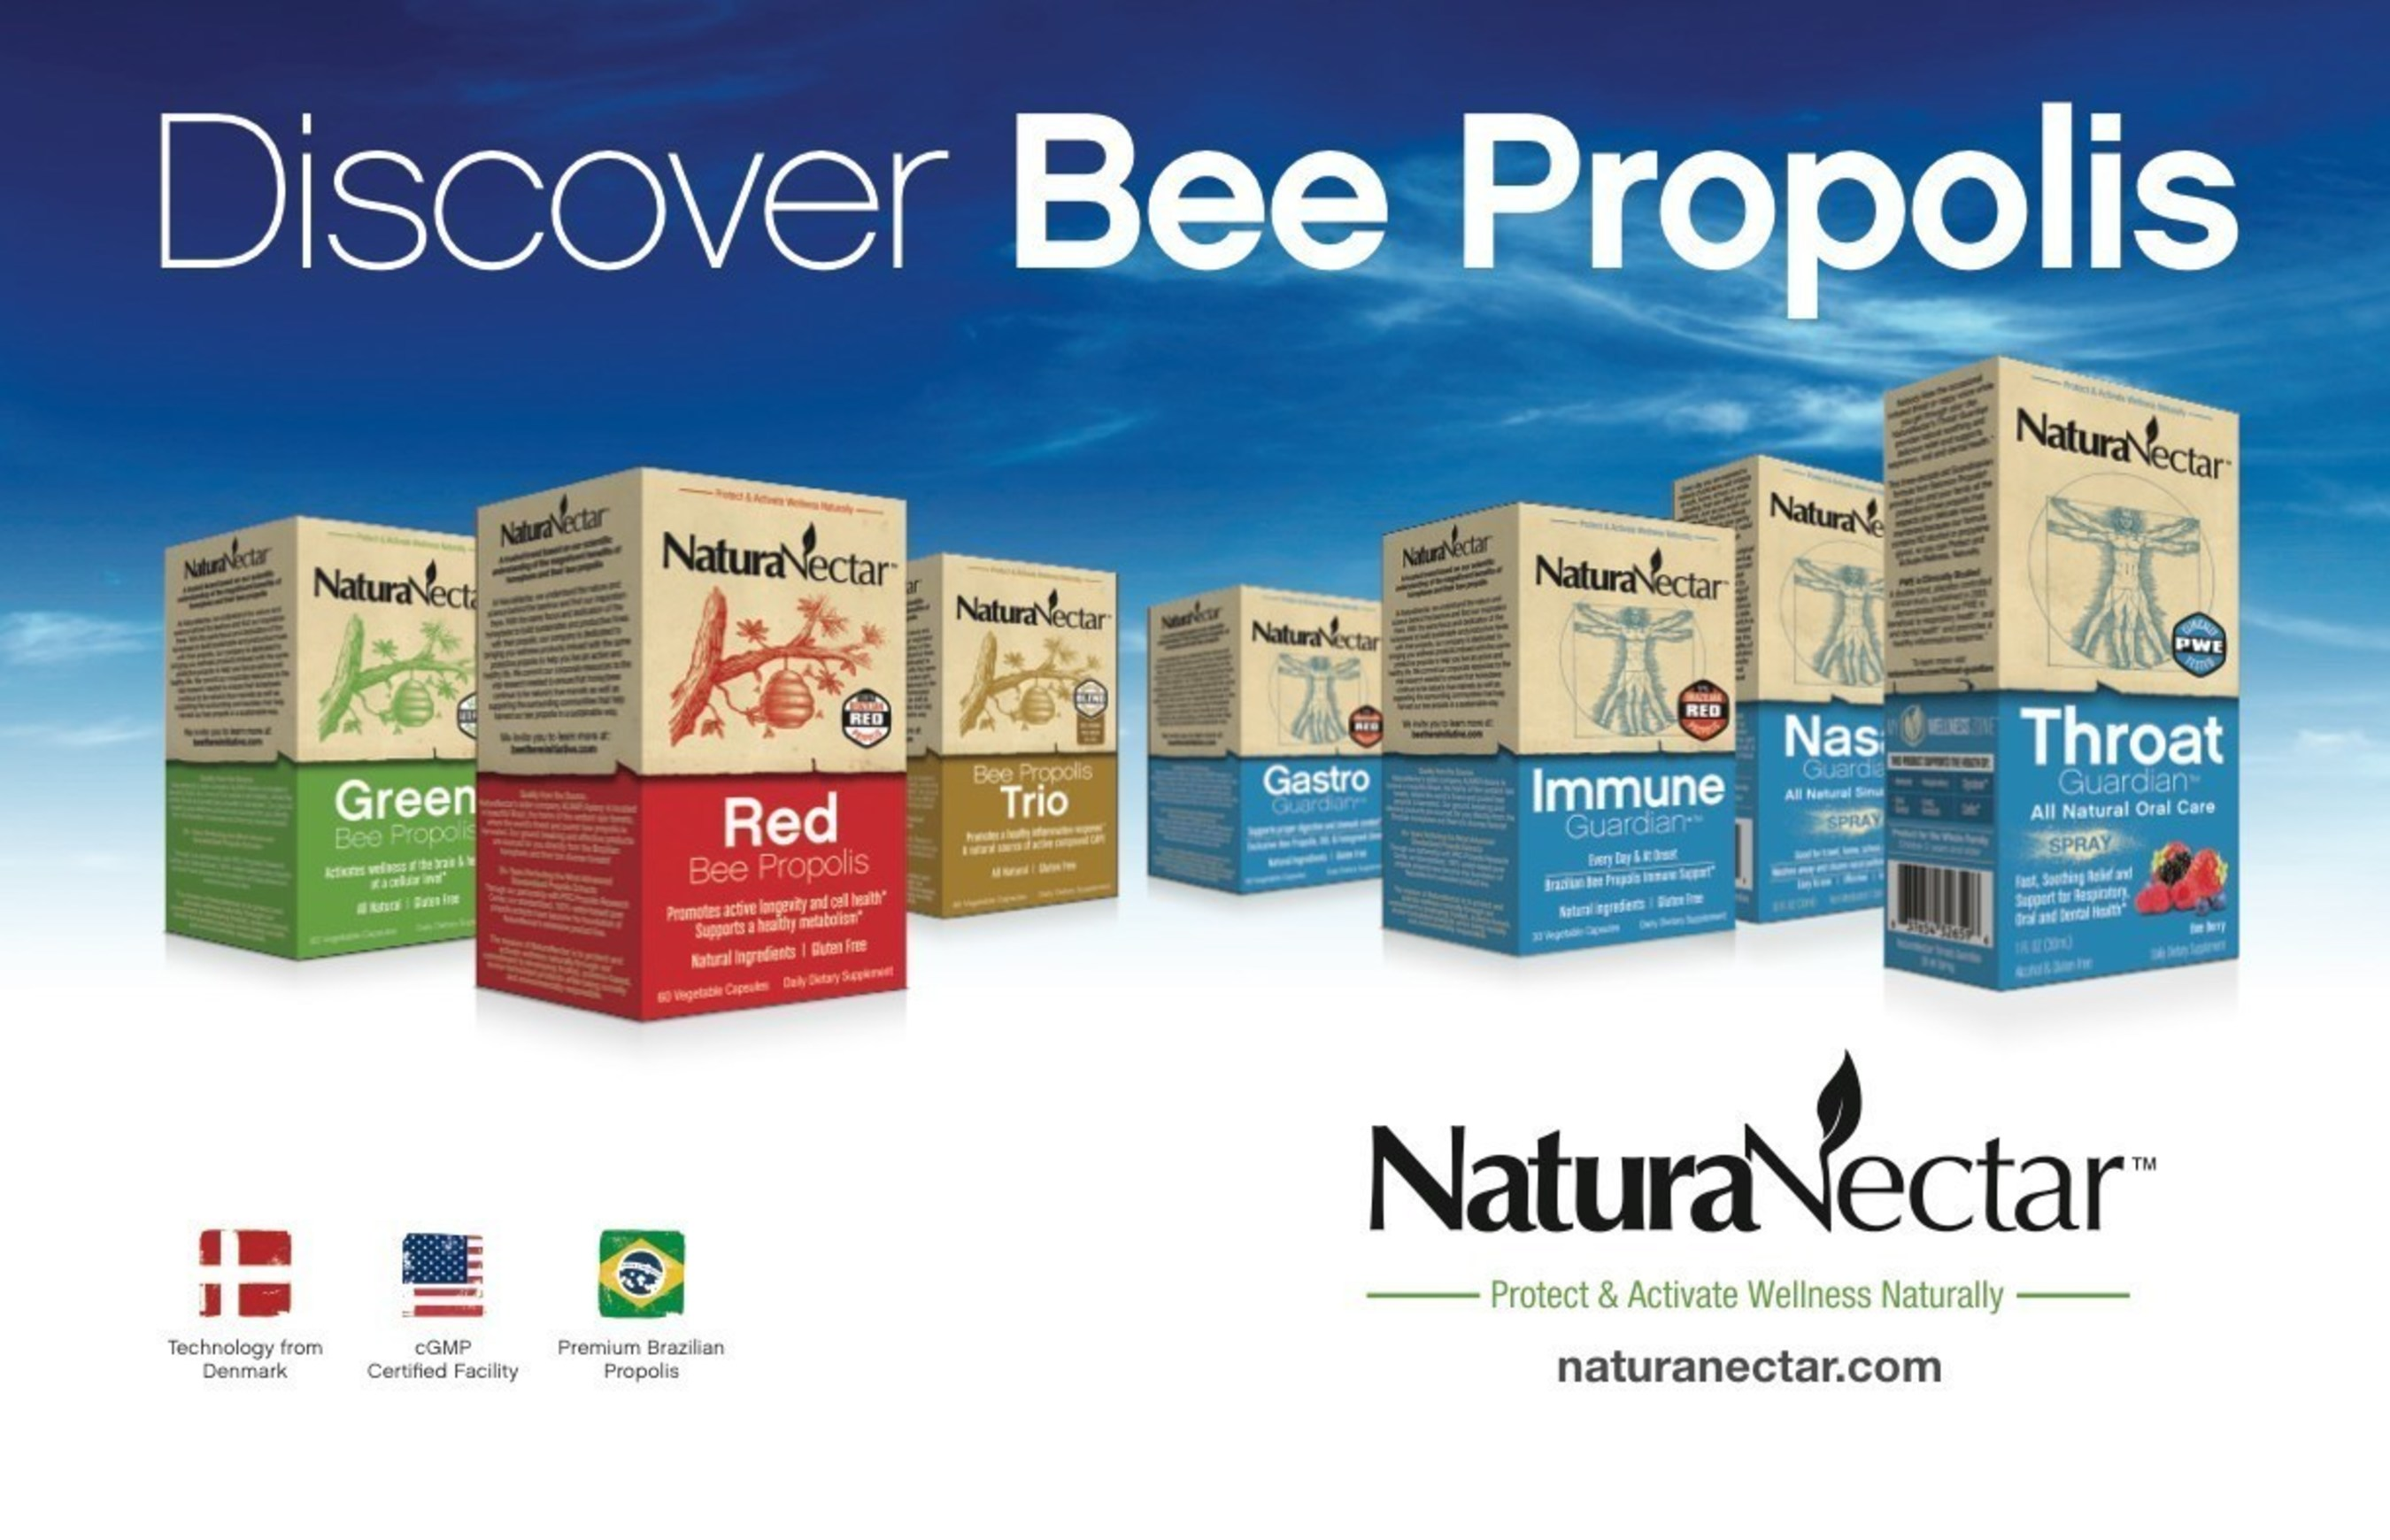 NBTY's Vitamin World to Carry NaturaNectar's Exclusive Bee Propolis Products